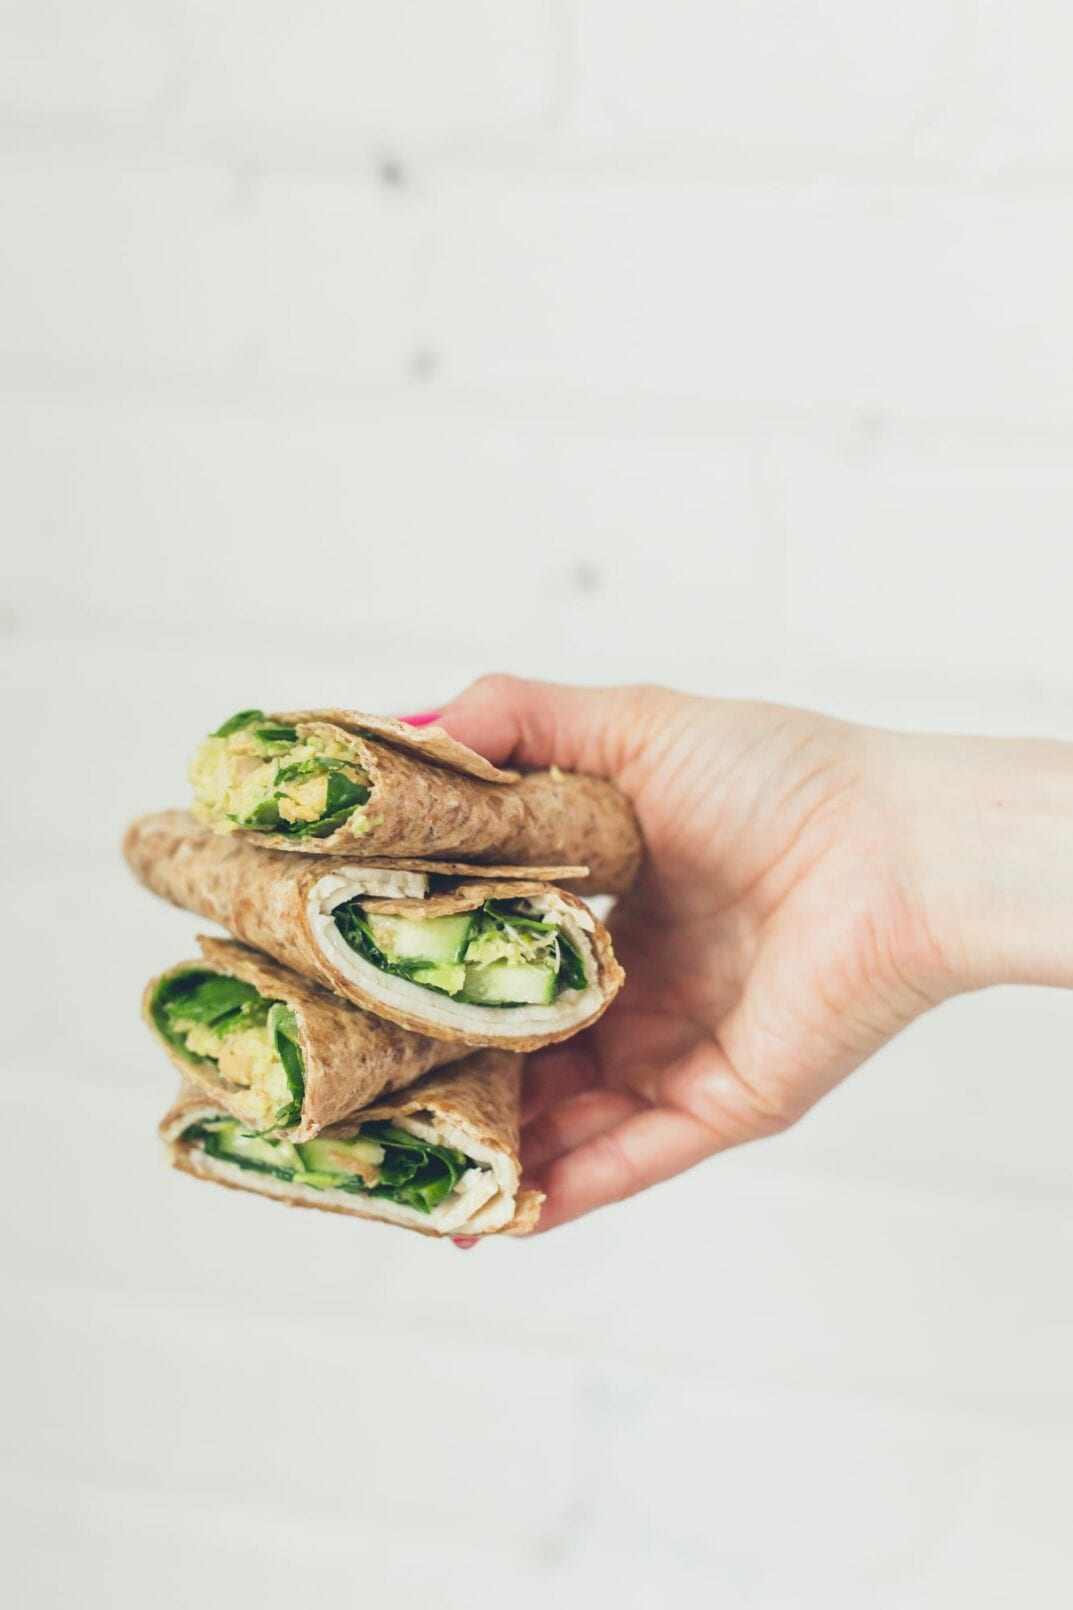 Easy and Healthy 1-Minute Lunch Wraps | Nourish Move Love